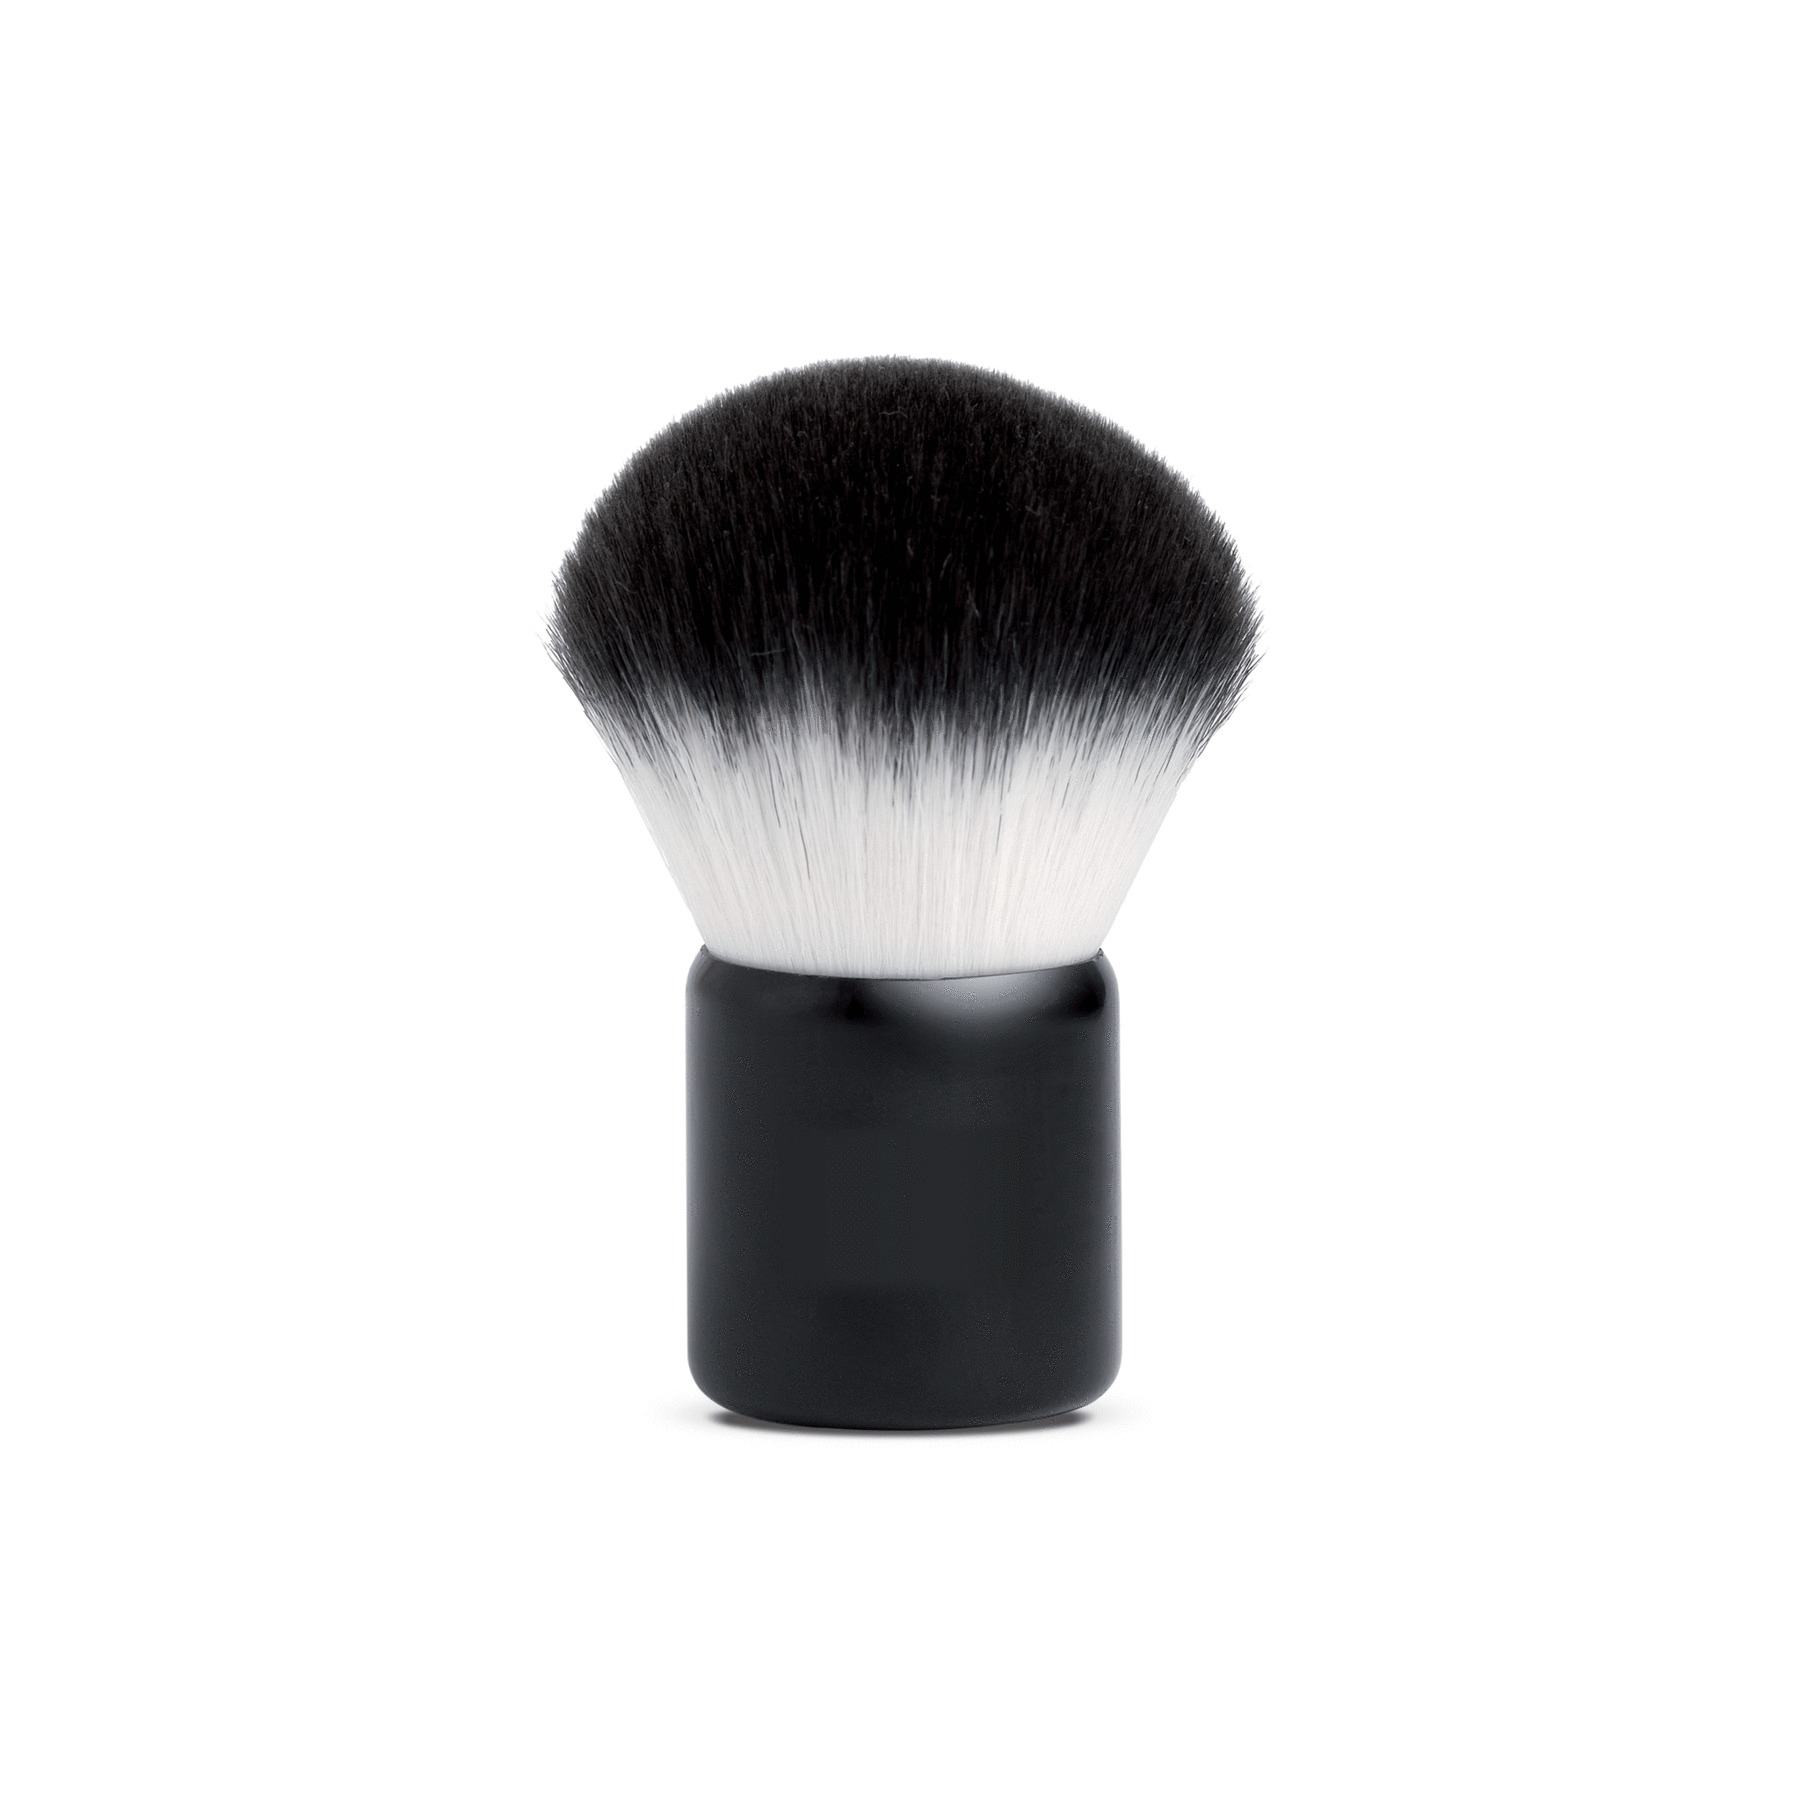 Spray Studio Bronzing Brush